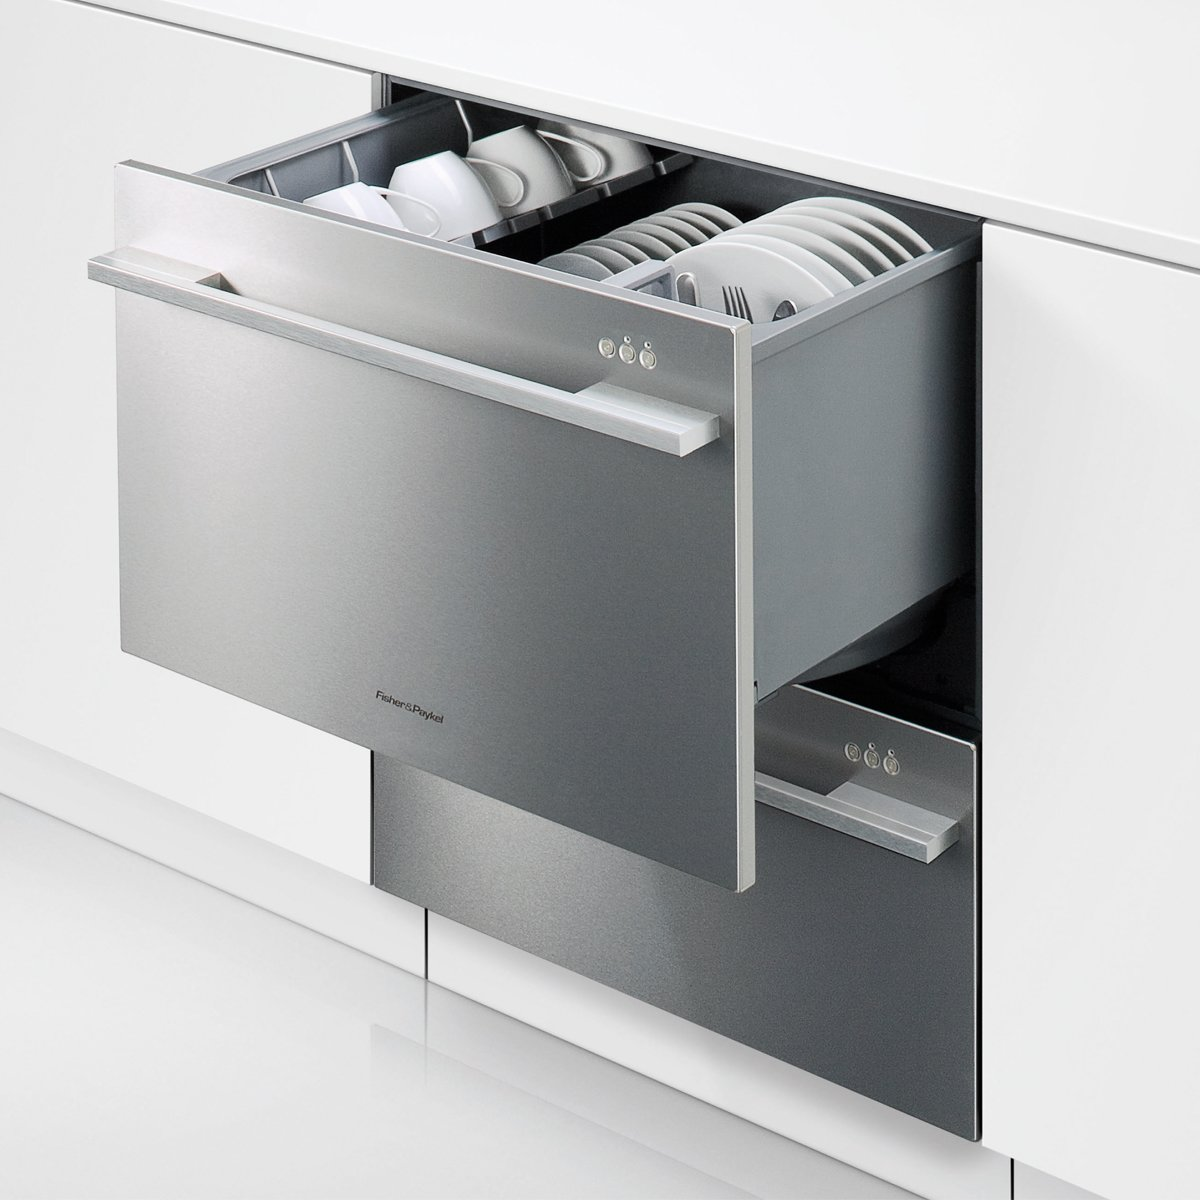 for over improvementhome styles best under home ideas style pic xf unbelievable drawer the sink putting and dishwasher